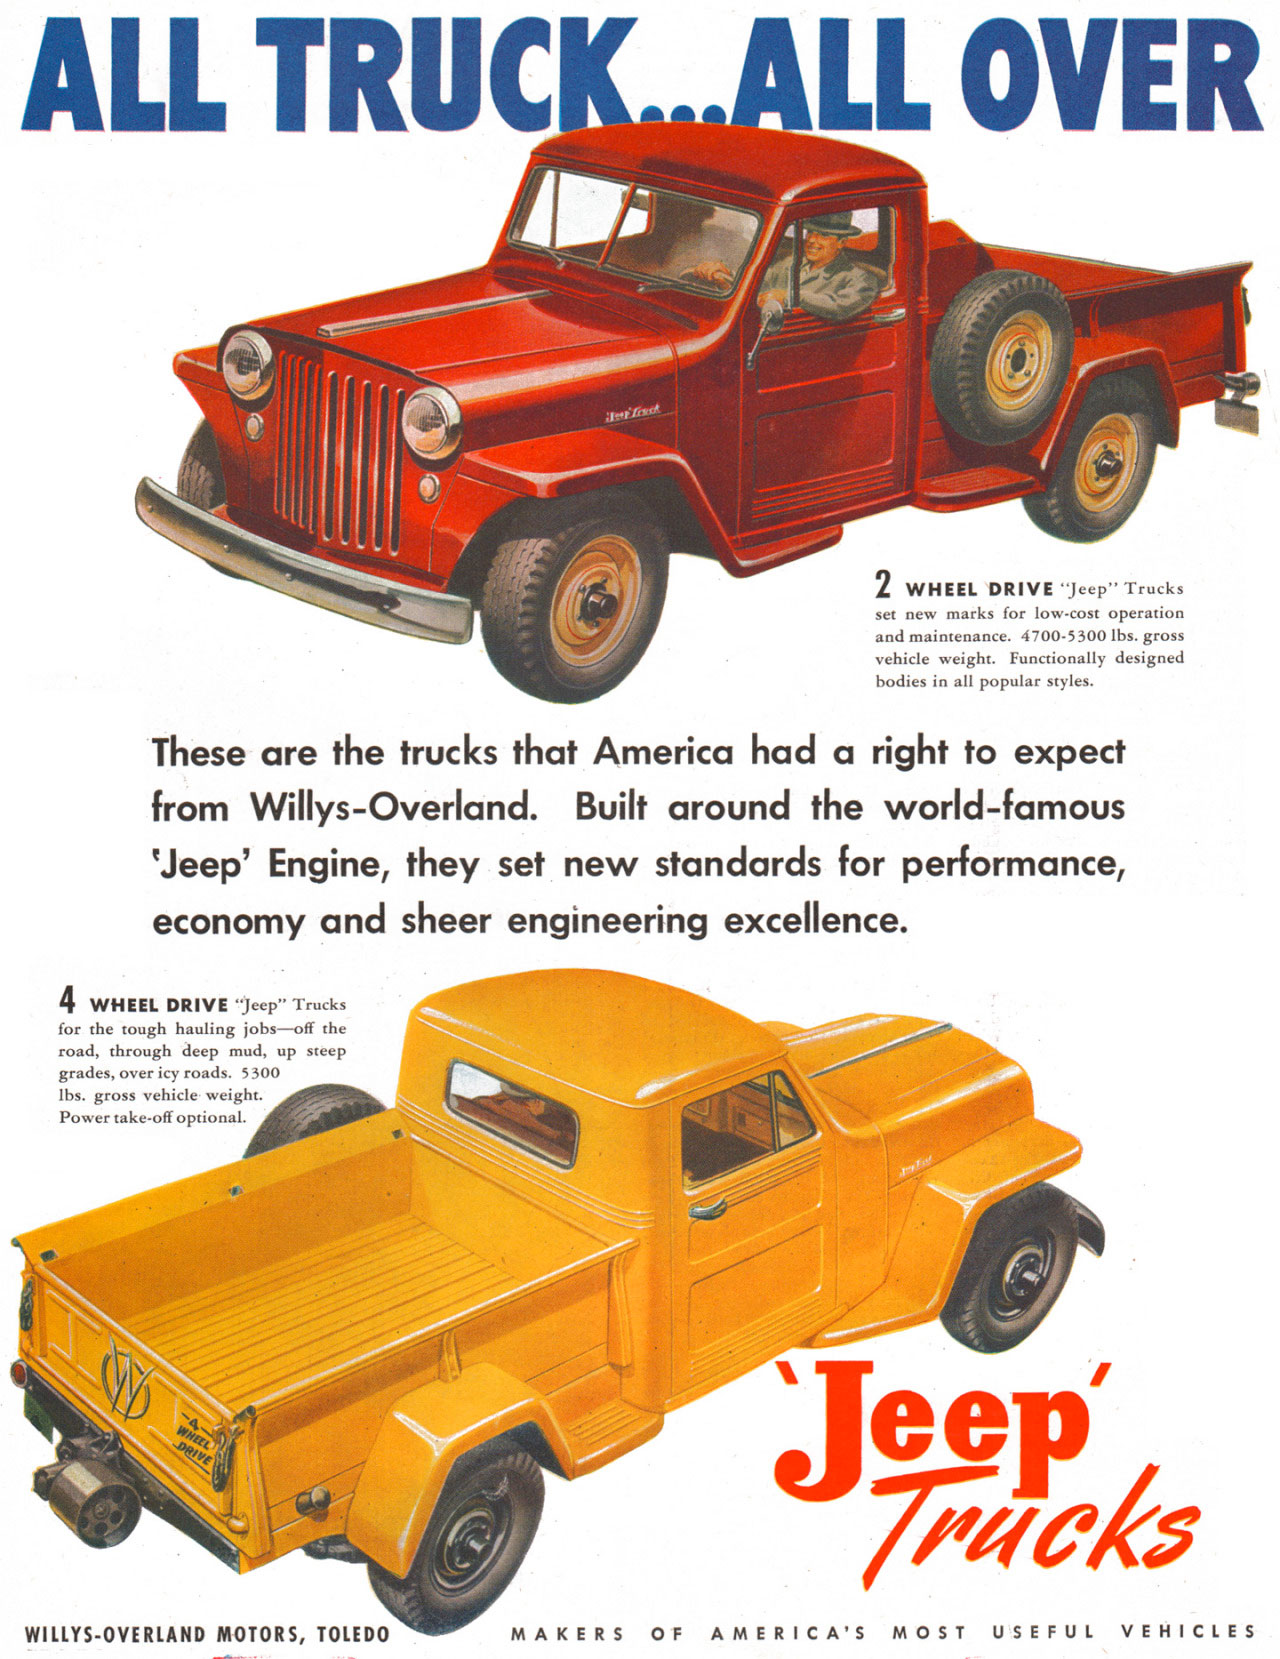 Jeep Trucks. All Truck... All Over! 2 WHEEL DRIVE –Jeep' Trucks set new marks for low-cost operation and maintenance. 4700-5300 lbs. gross vehicle weight. Functionally designed bodies in all popular styles. These are the trucks that America had a right to expect from Willys-Overland. Built around the world-famous 'Jeep' Engine, they set new standards for performance, economy and sheer engineering excellence. 4 WHEEL DRIVE 'Jeep' Trucks for the tough hauling jobs—off the road, through deep mud, up steep grades, over icy roads. 5300 lbs. gross vehicle weight. Power take-off optional. WILLYS-OVERLAND MOTORS, TOLEDO MAKERS OF AMERICA'S MOST USEFUL VEHICLES